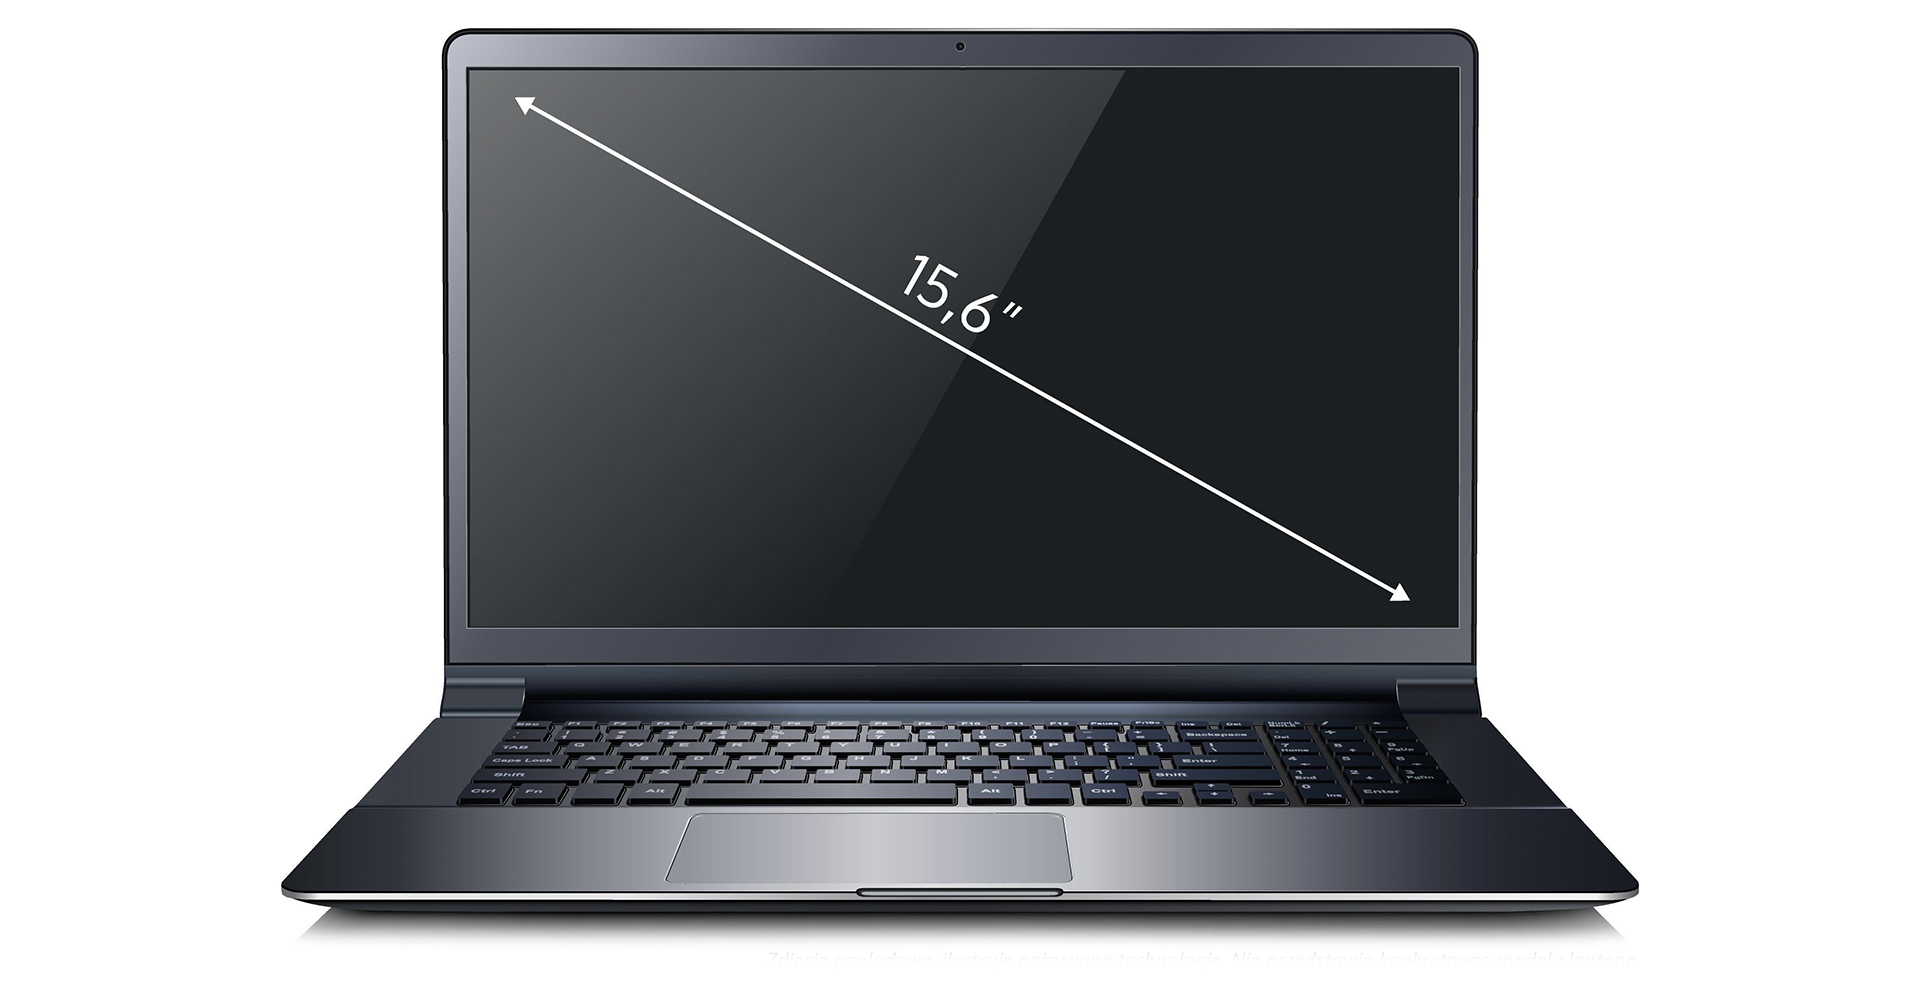 Fujitsu LifeBook A357 (S26391K425V300) 16 GB RAM/ 1 TB SSD/ 2TB HDD/ Windows 10 Pro                             15.6-tollise diagonaaliga